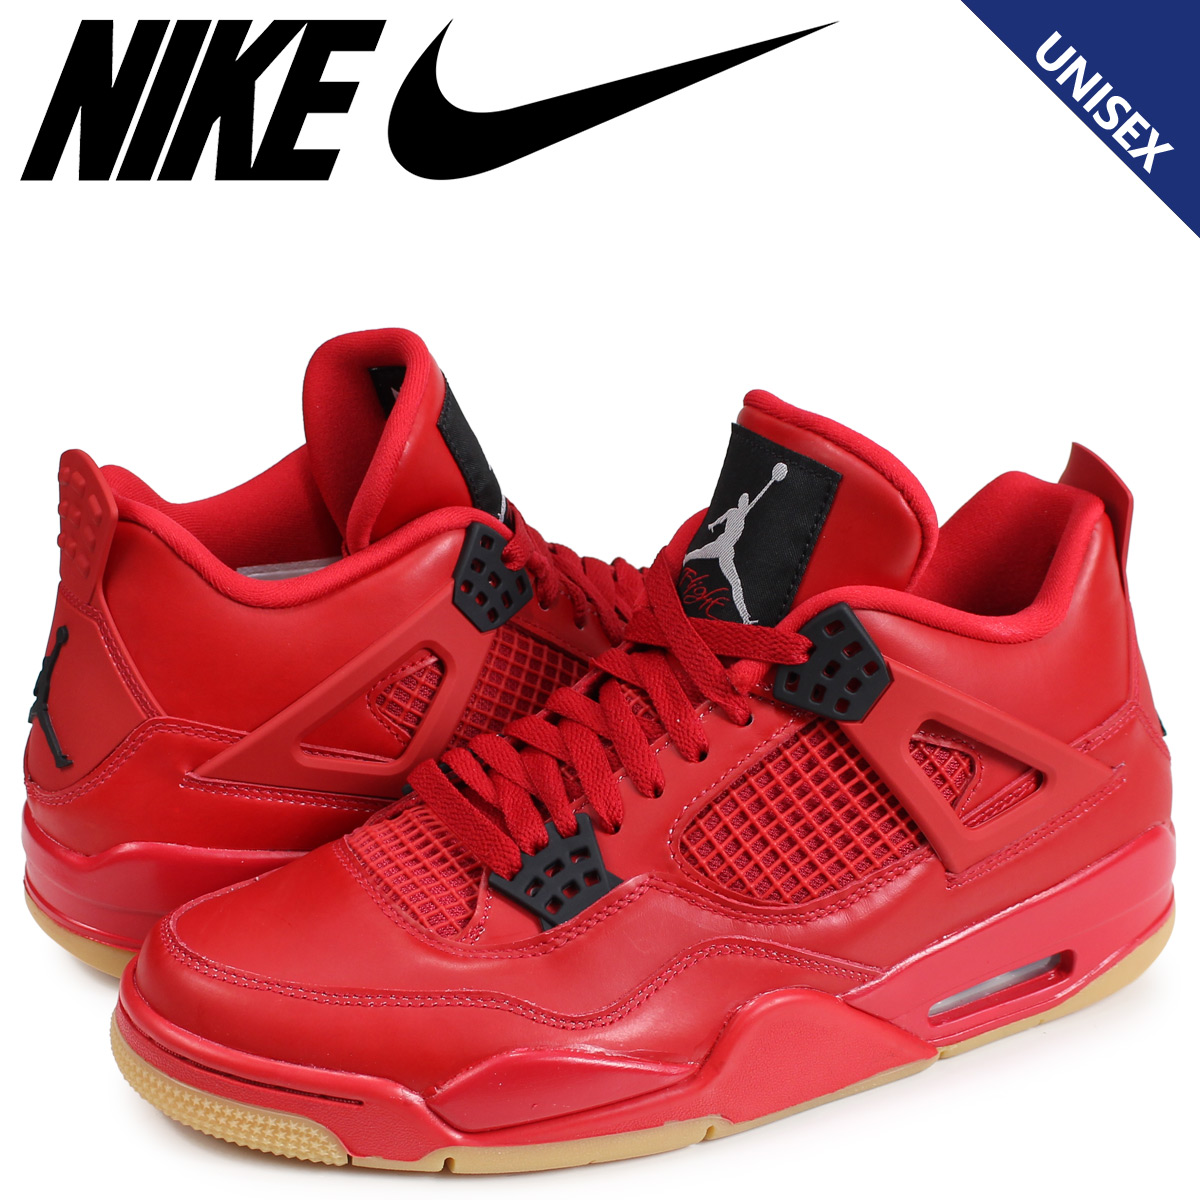 57858d58521db3 NIKE WMNS AIR JORDAN 4 RETRO NRG SINGLES DAY Nike Air Jordan 4 nostalgic  sneakers Lady s men red AV3914-600